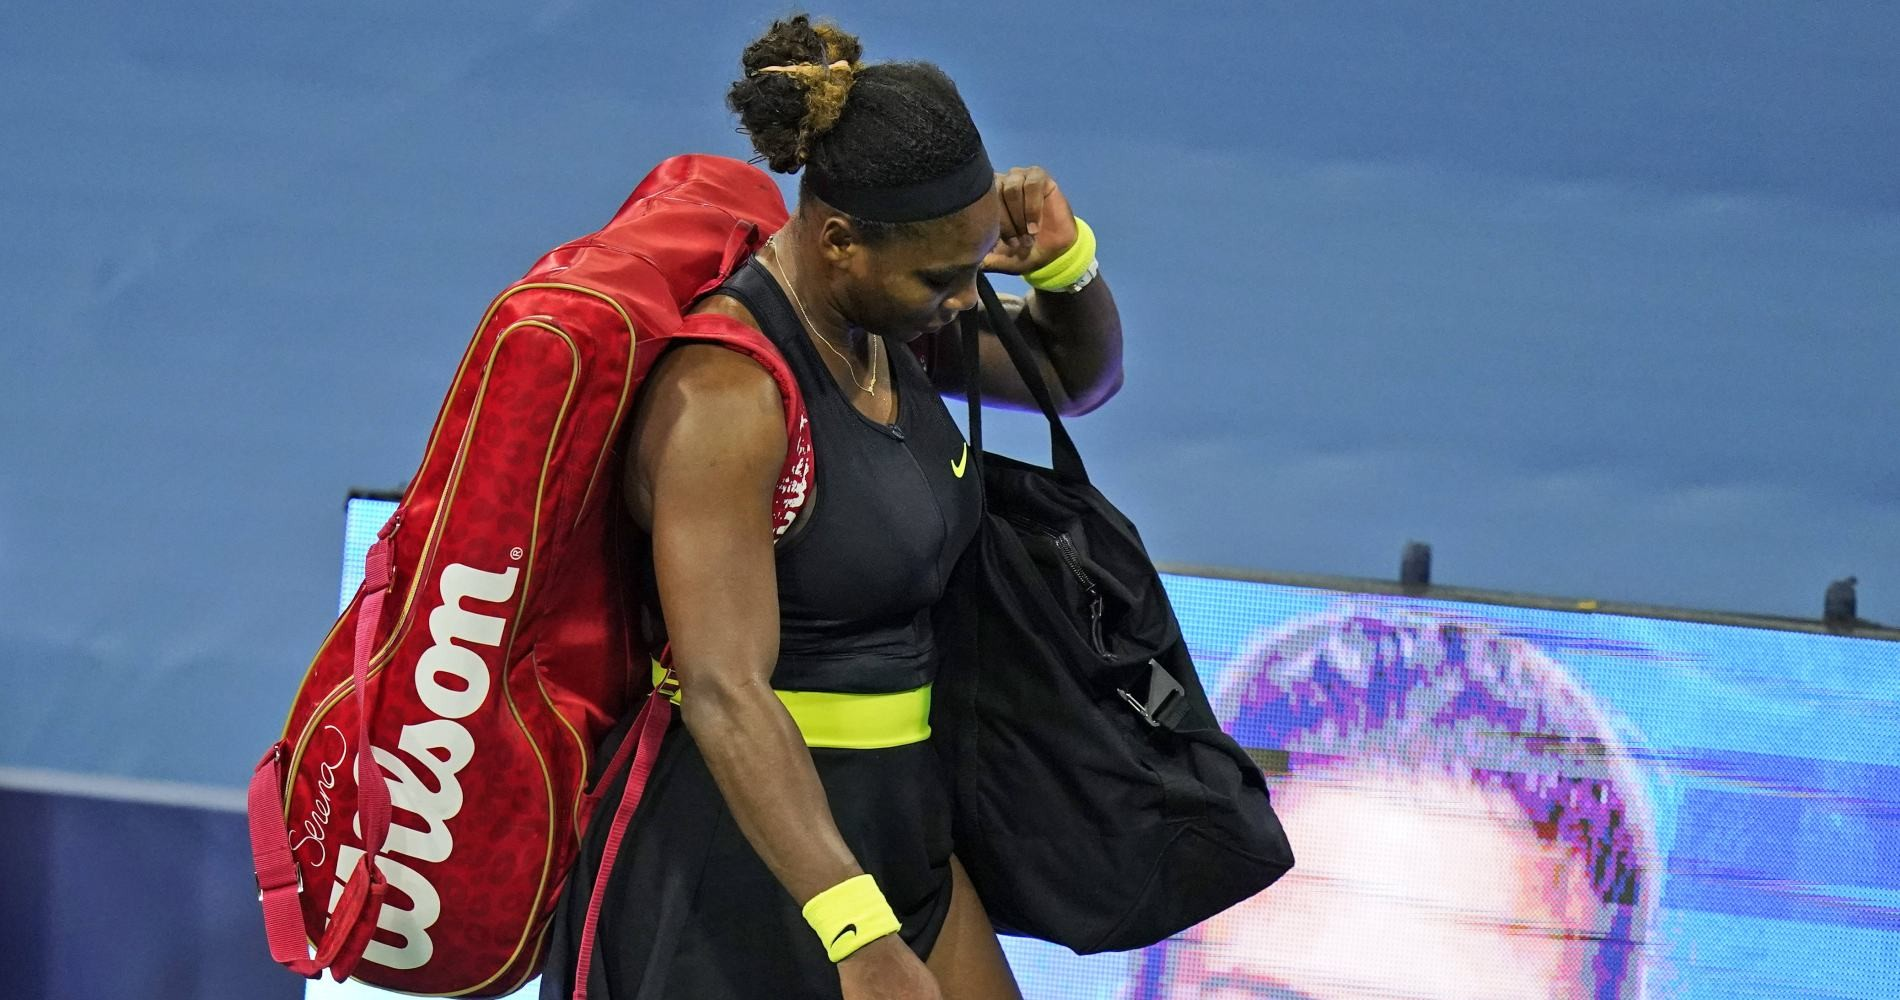 Serena Williams, Western & Southern Open (New York / Flushing Meadows), 2020